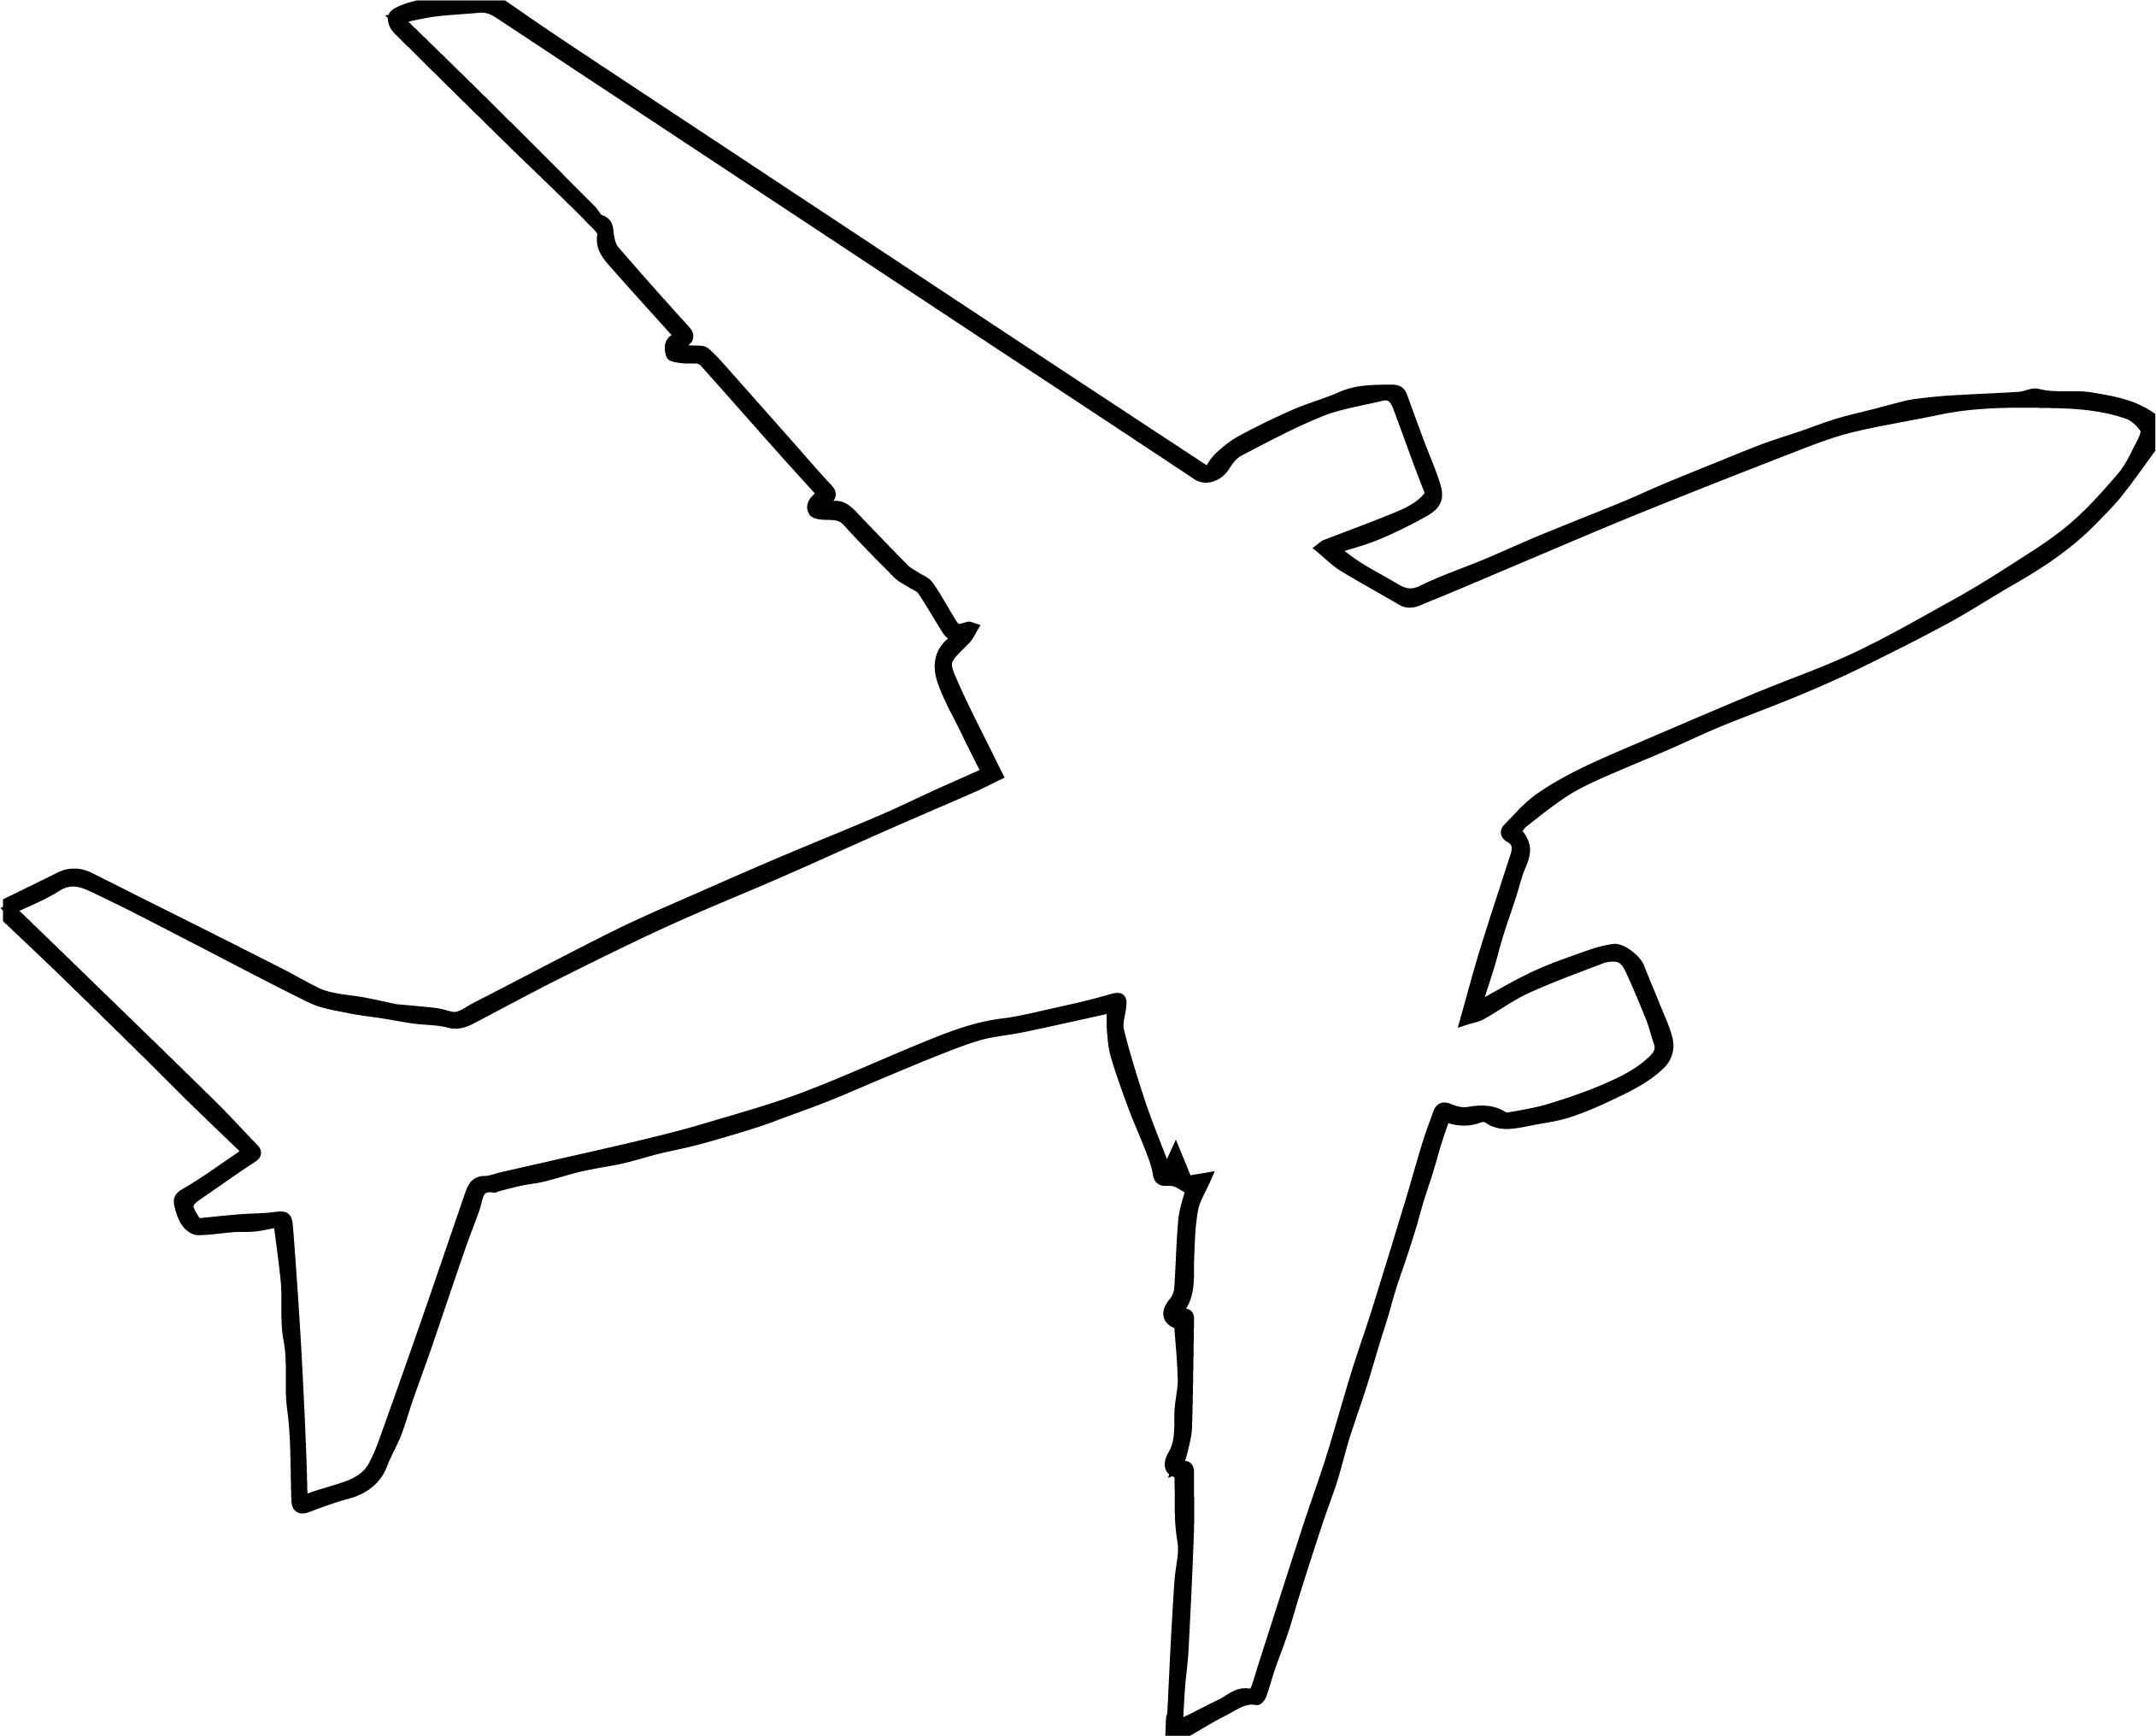 The Best Free Airplane Silhouette Images Download From